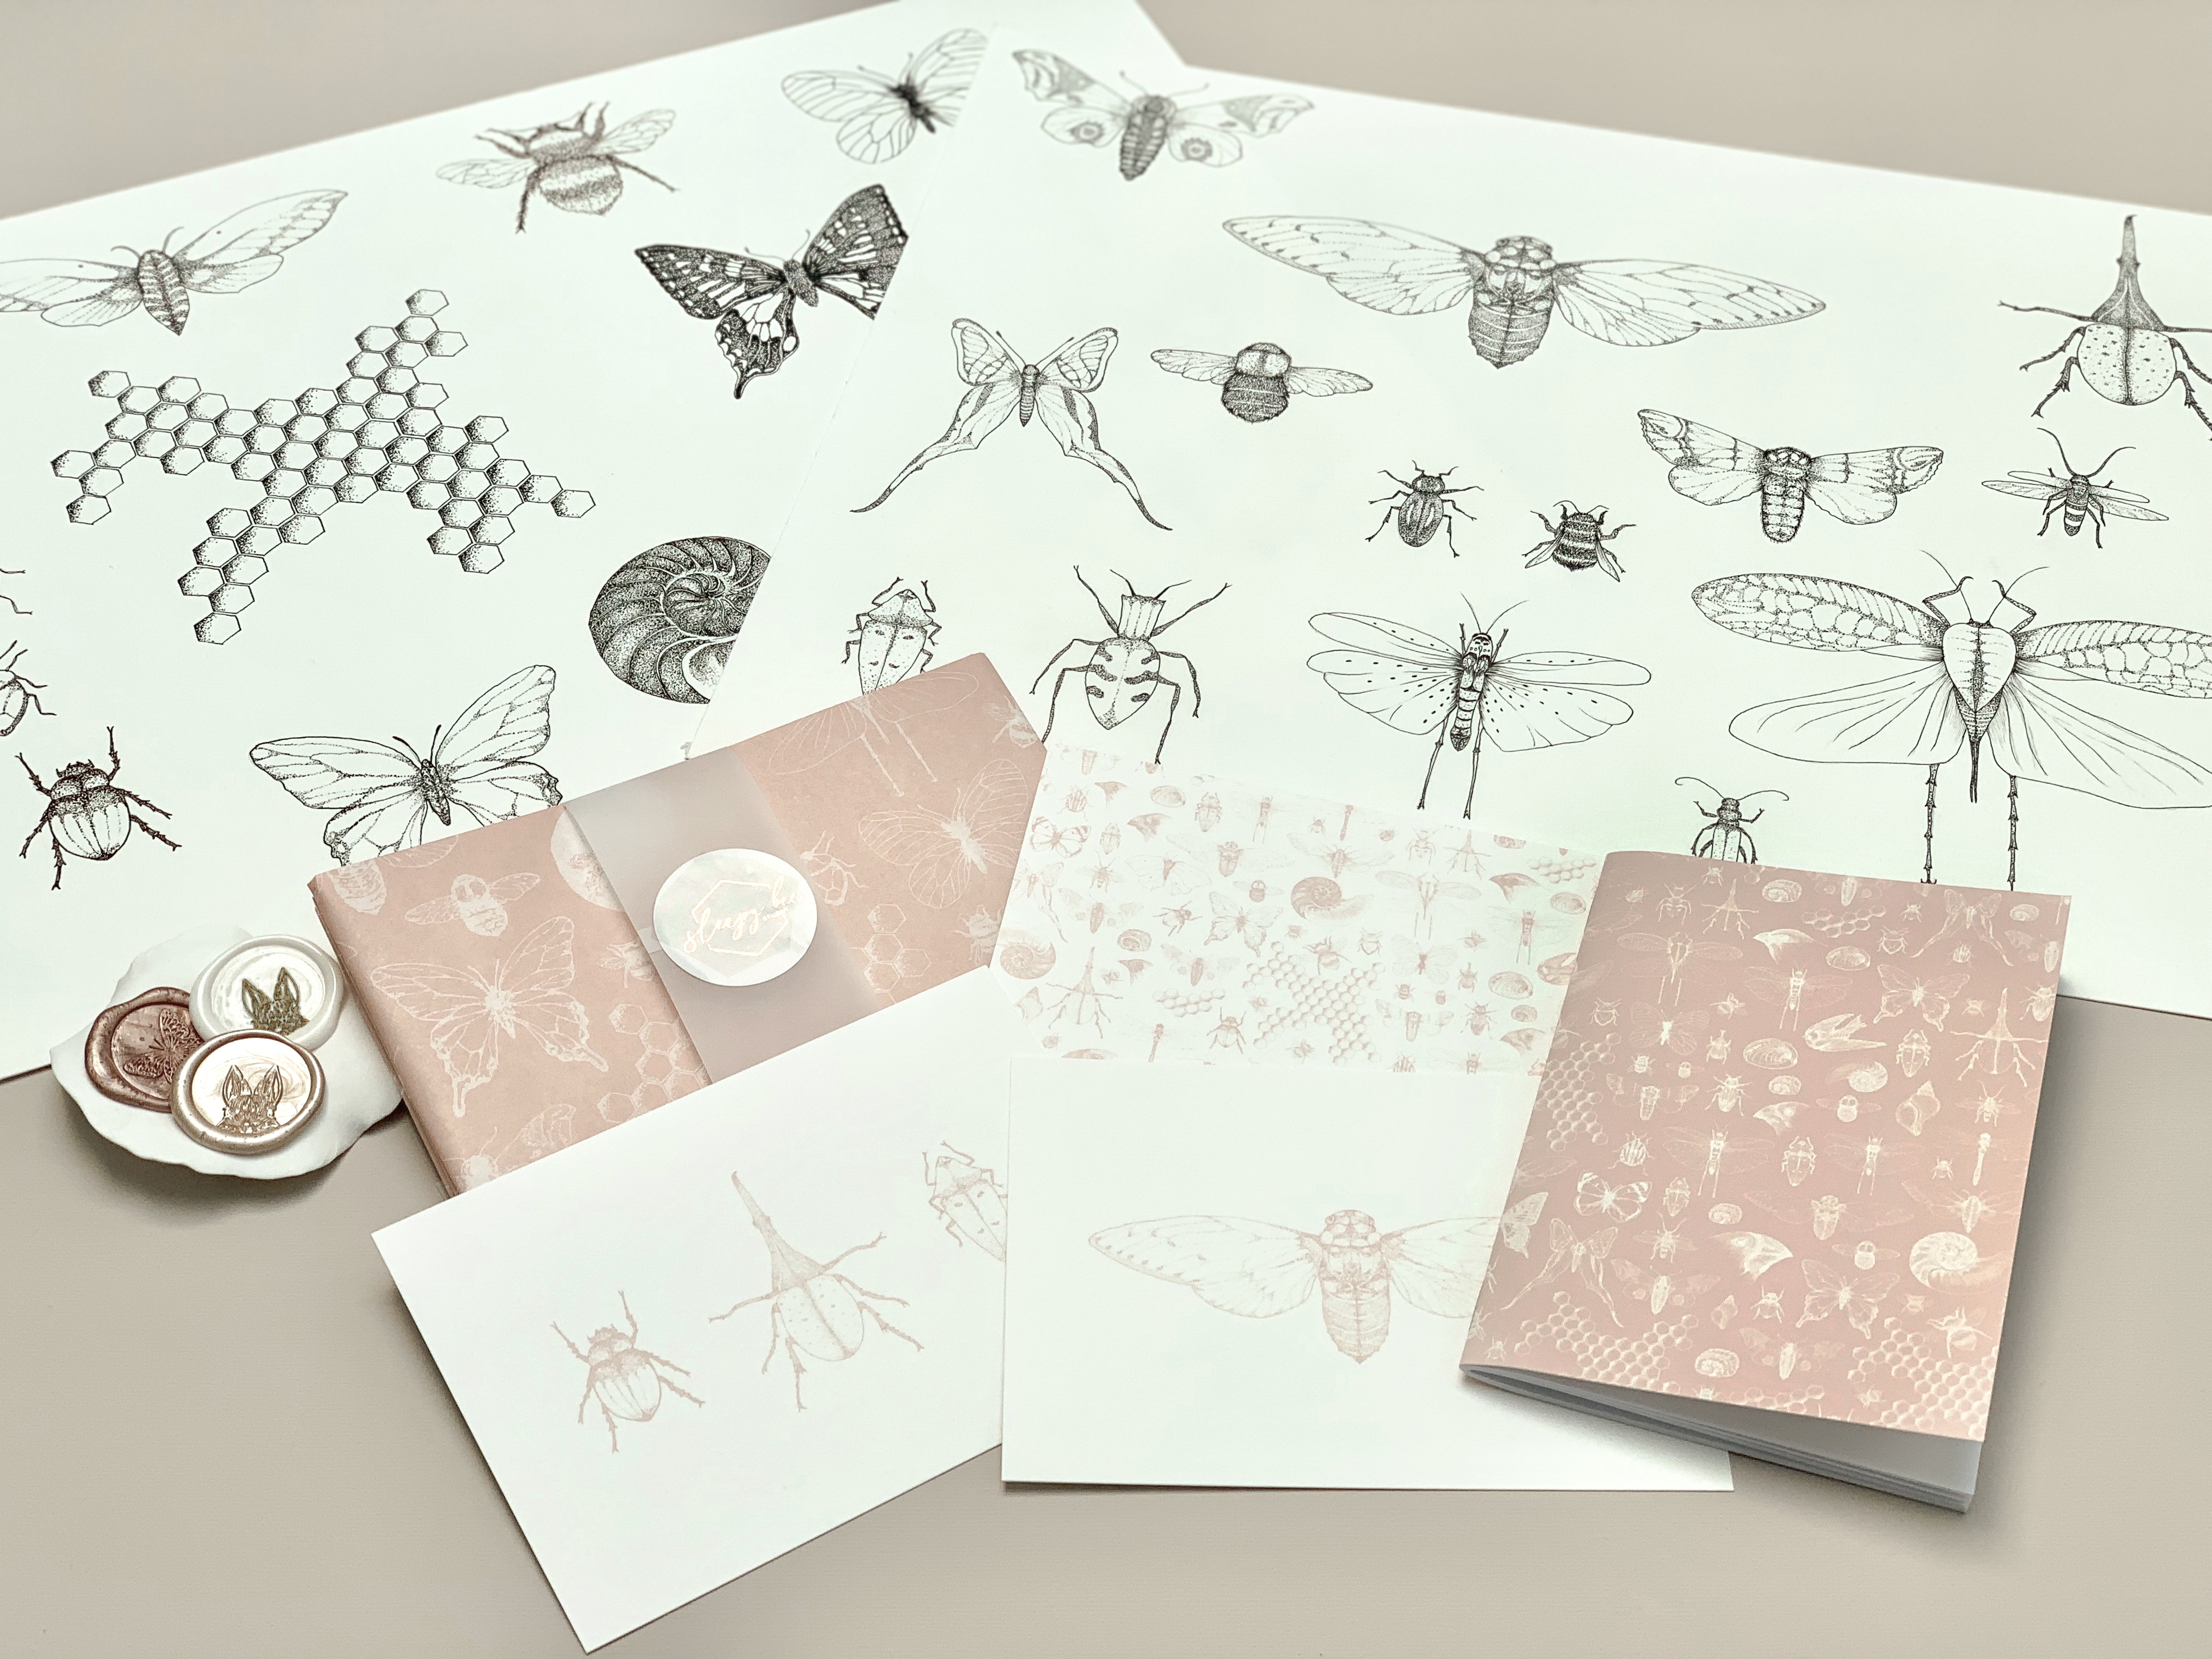 Charlotte's inspiration comes from all over her hometown of Cambridge. Here's the beginnings of her Darwin Collection!